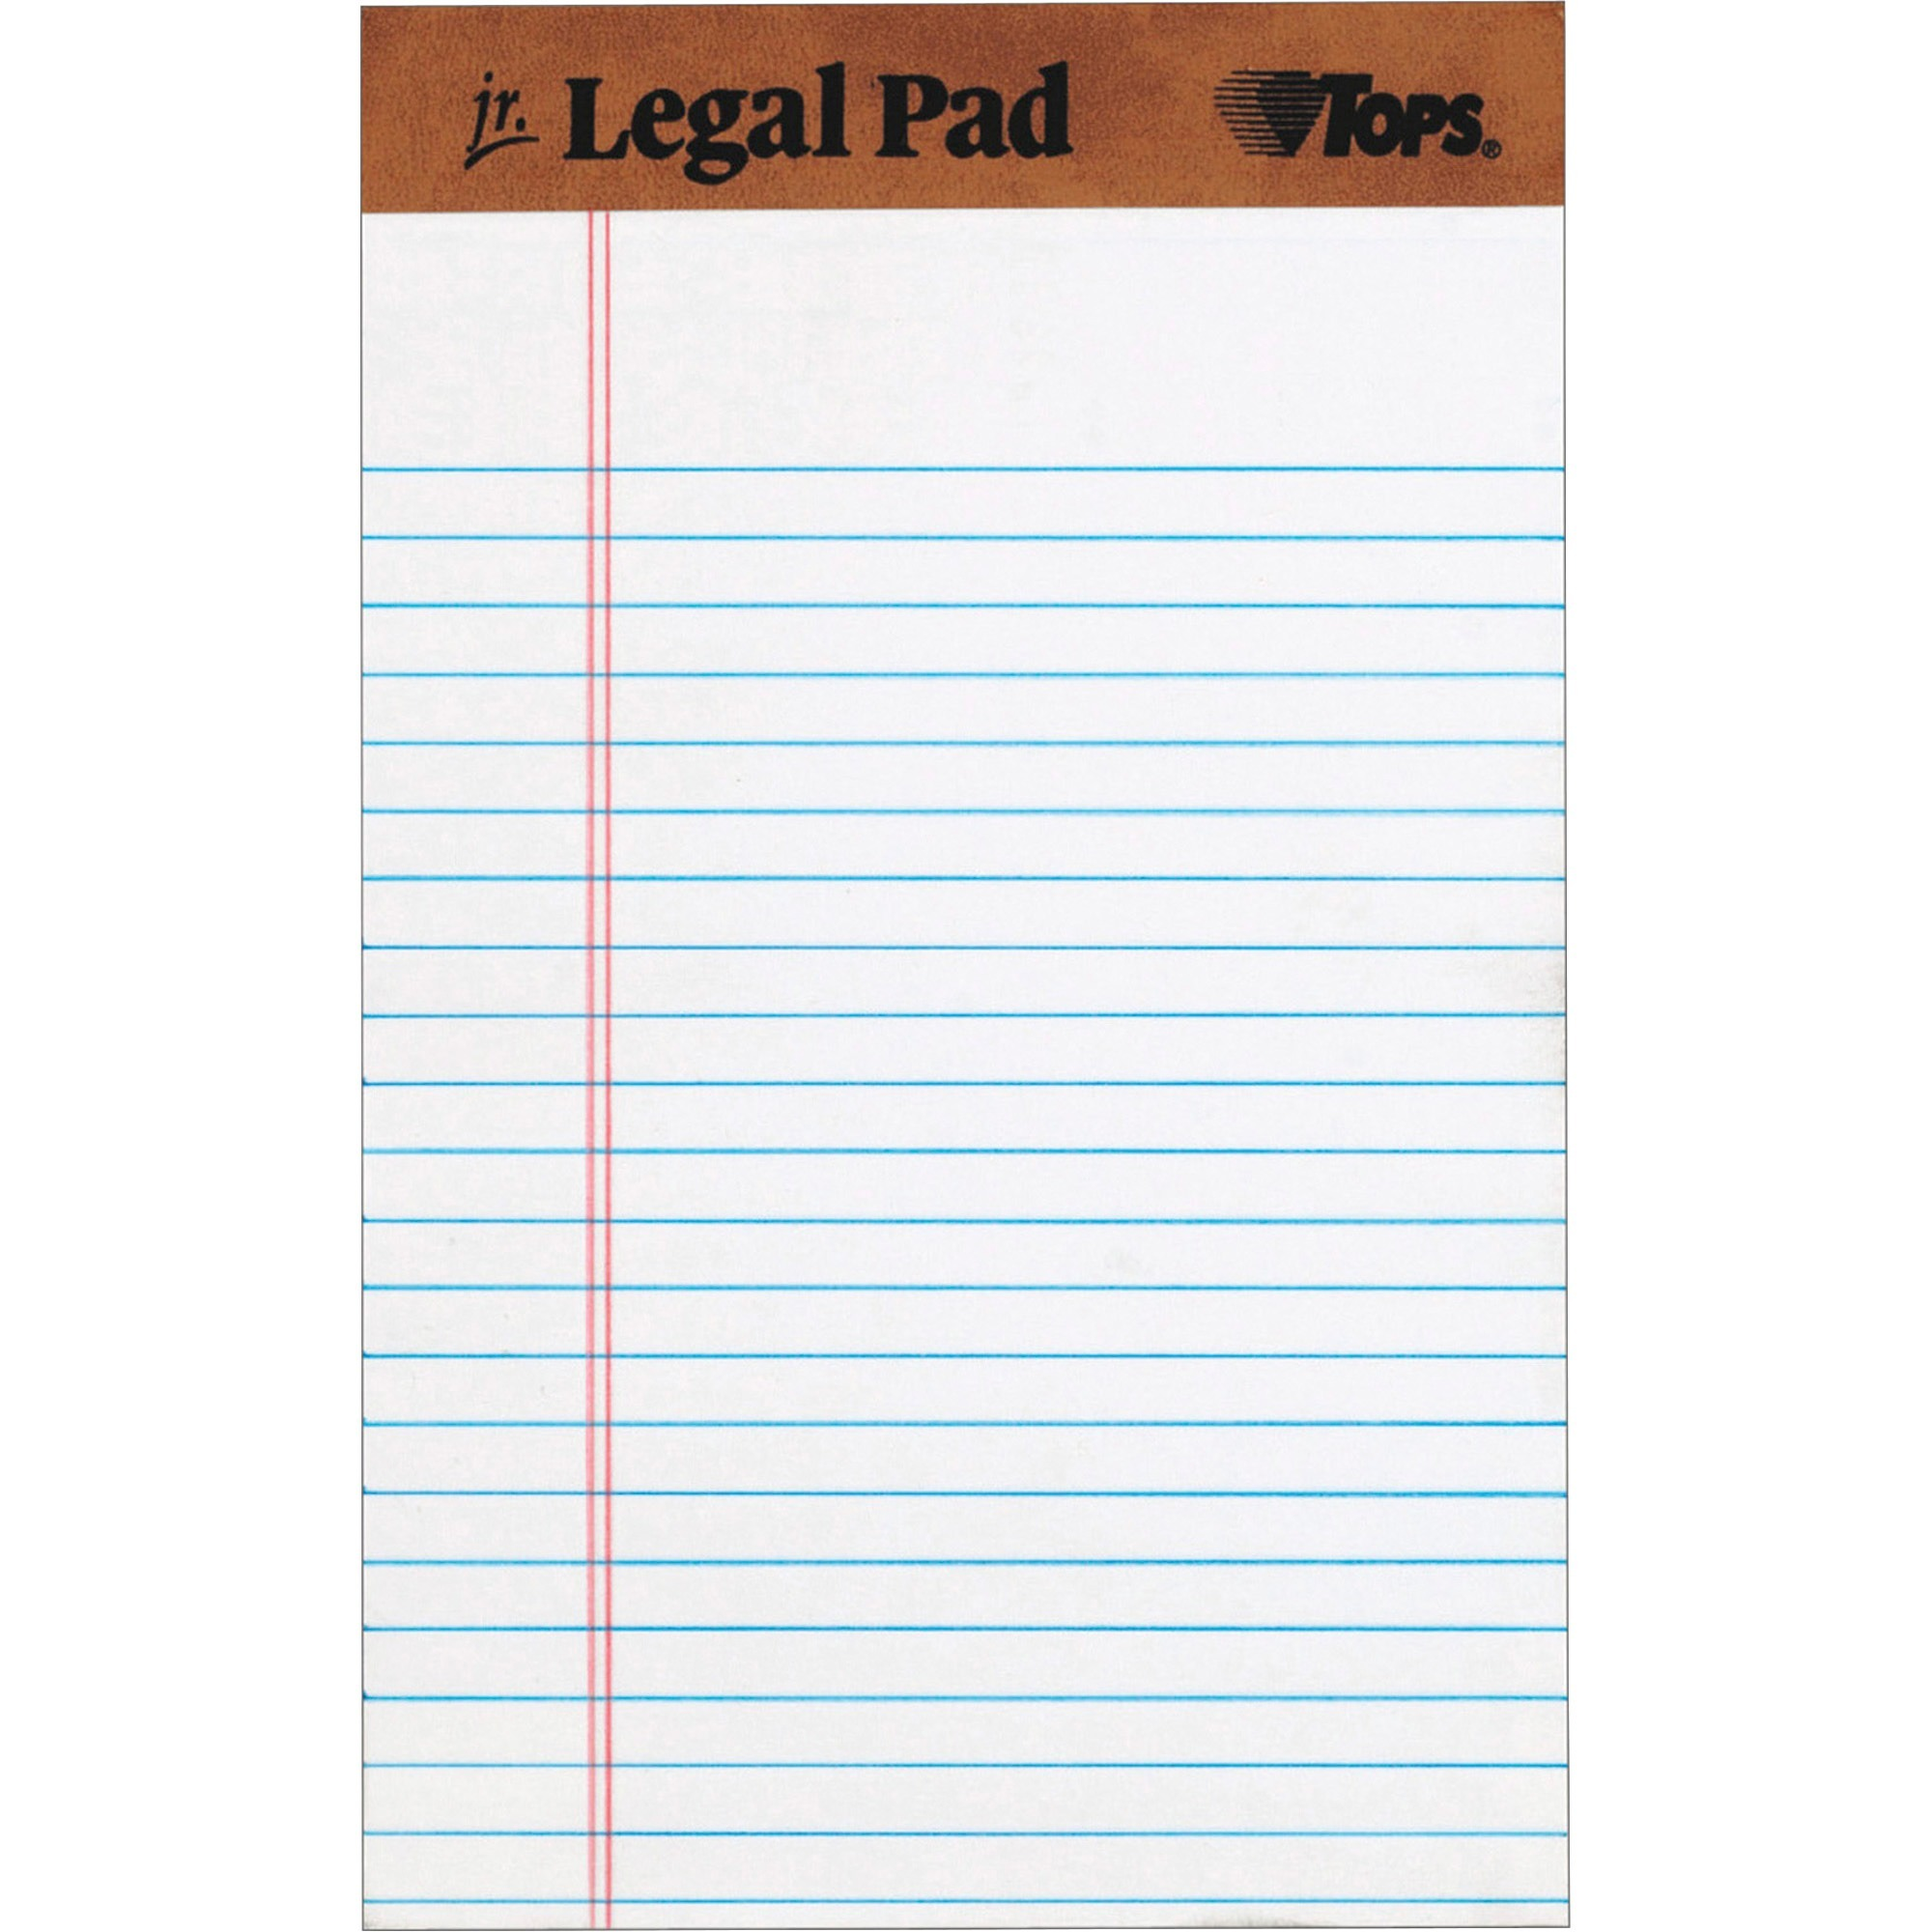 TOPS The Legal Pad Writing Pads, Jr. Legal Rule, 50 Sheets, Wht, (7500)